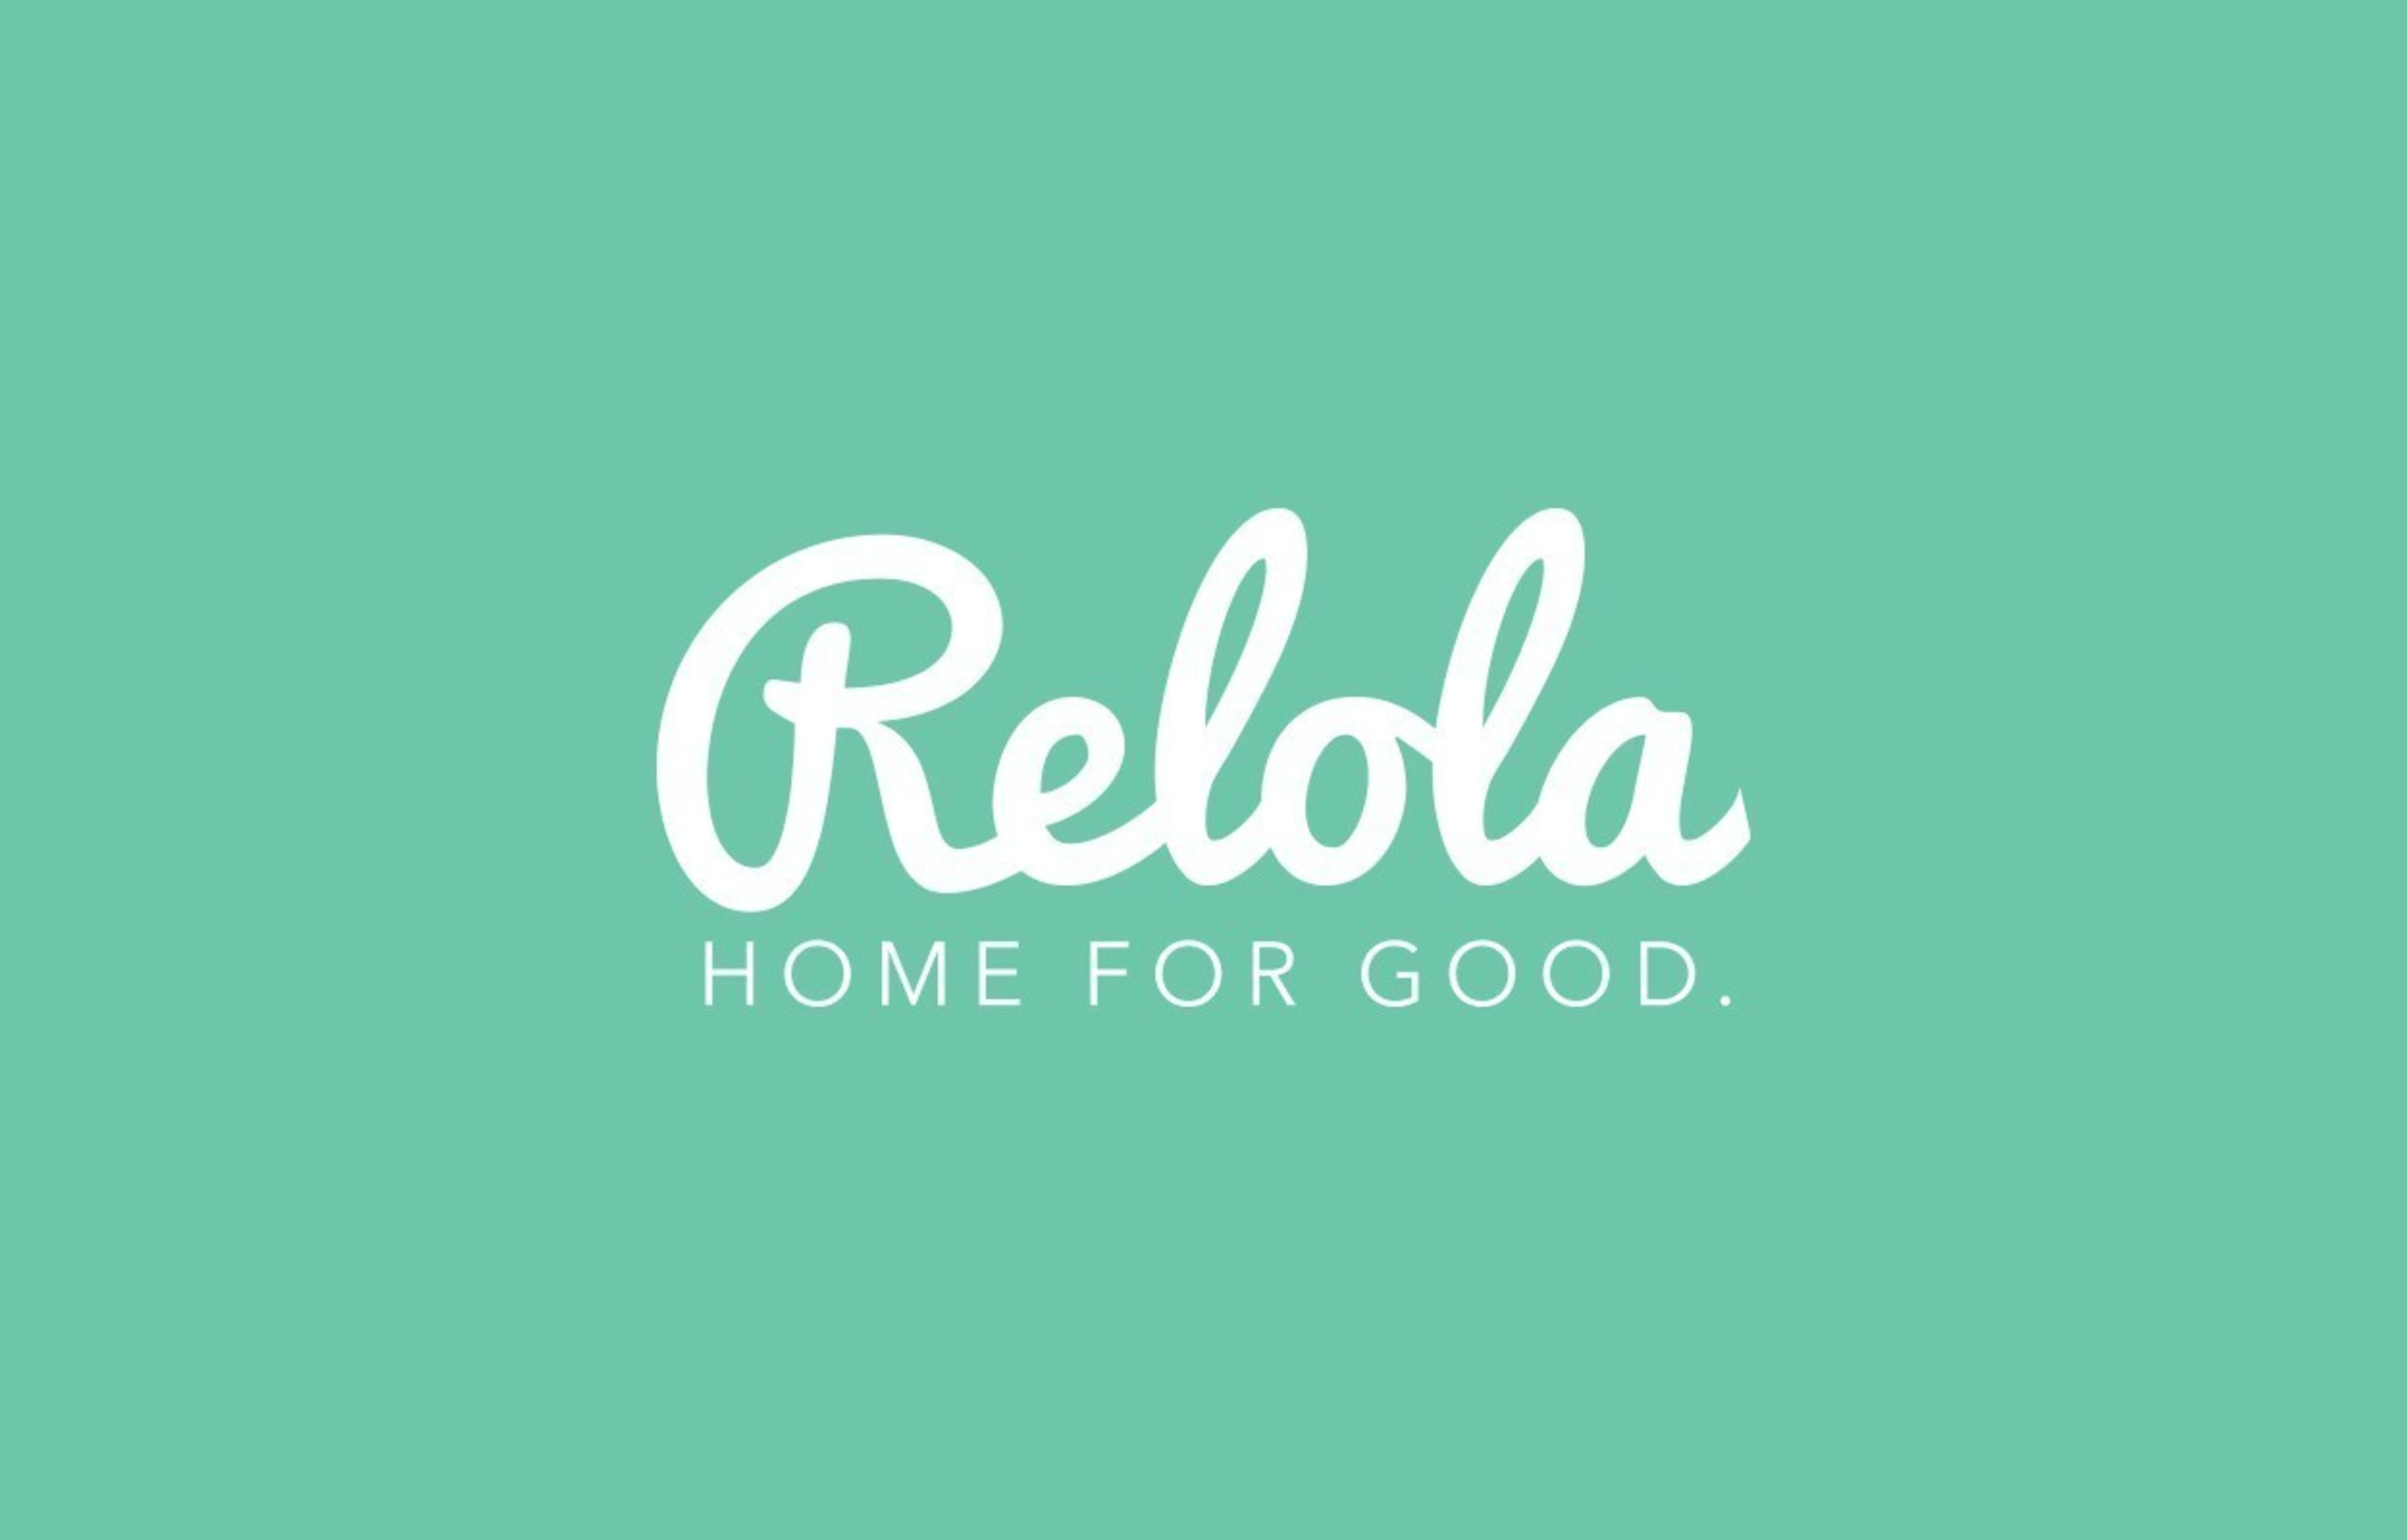 United Real Estate Partners With Relola.com